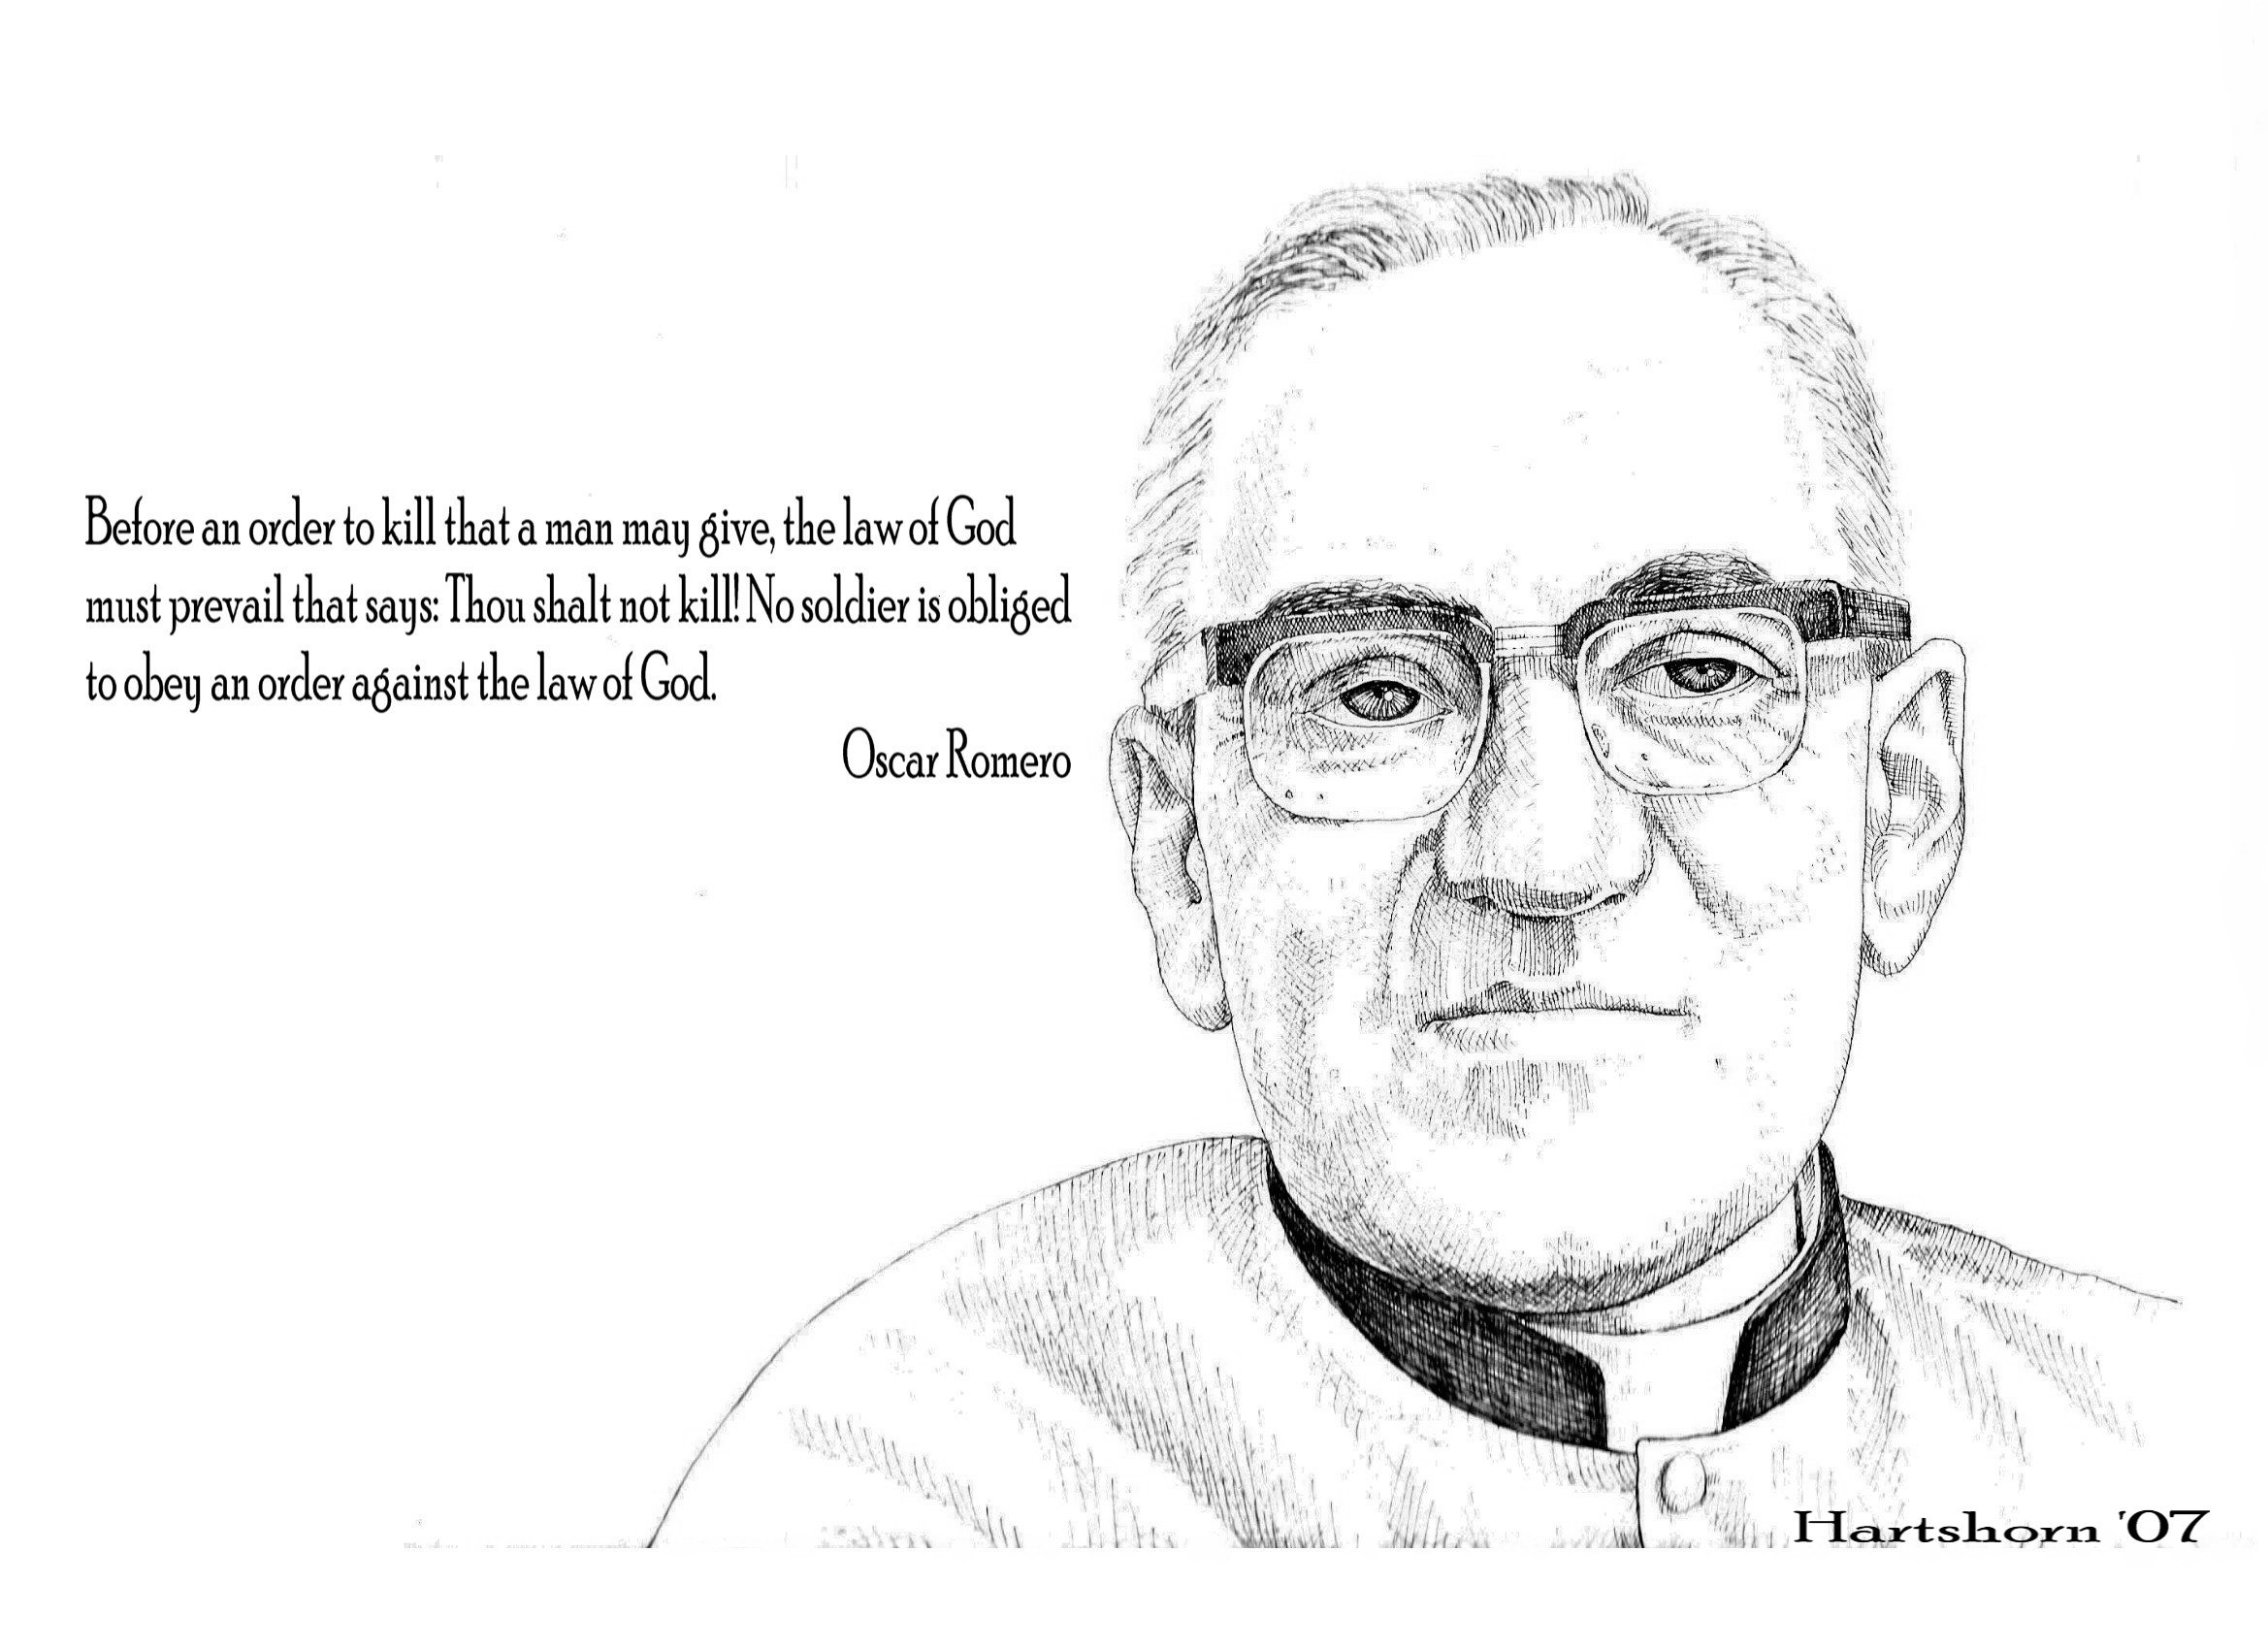 God Crucified A Reaction To Kevin Deyoung further Archbishop Oscar Romero additionally Vikings 2013 besides Archbishop Romeros Legacy Is Relevant To New Generation furthermore Social Justice Links. on oscar romero church